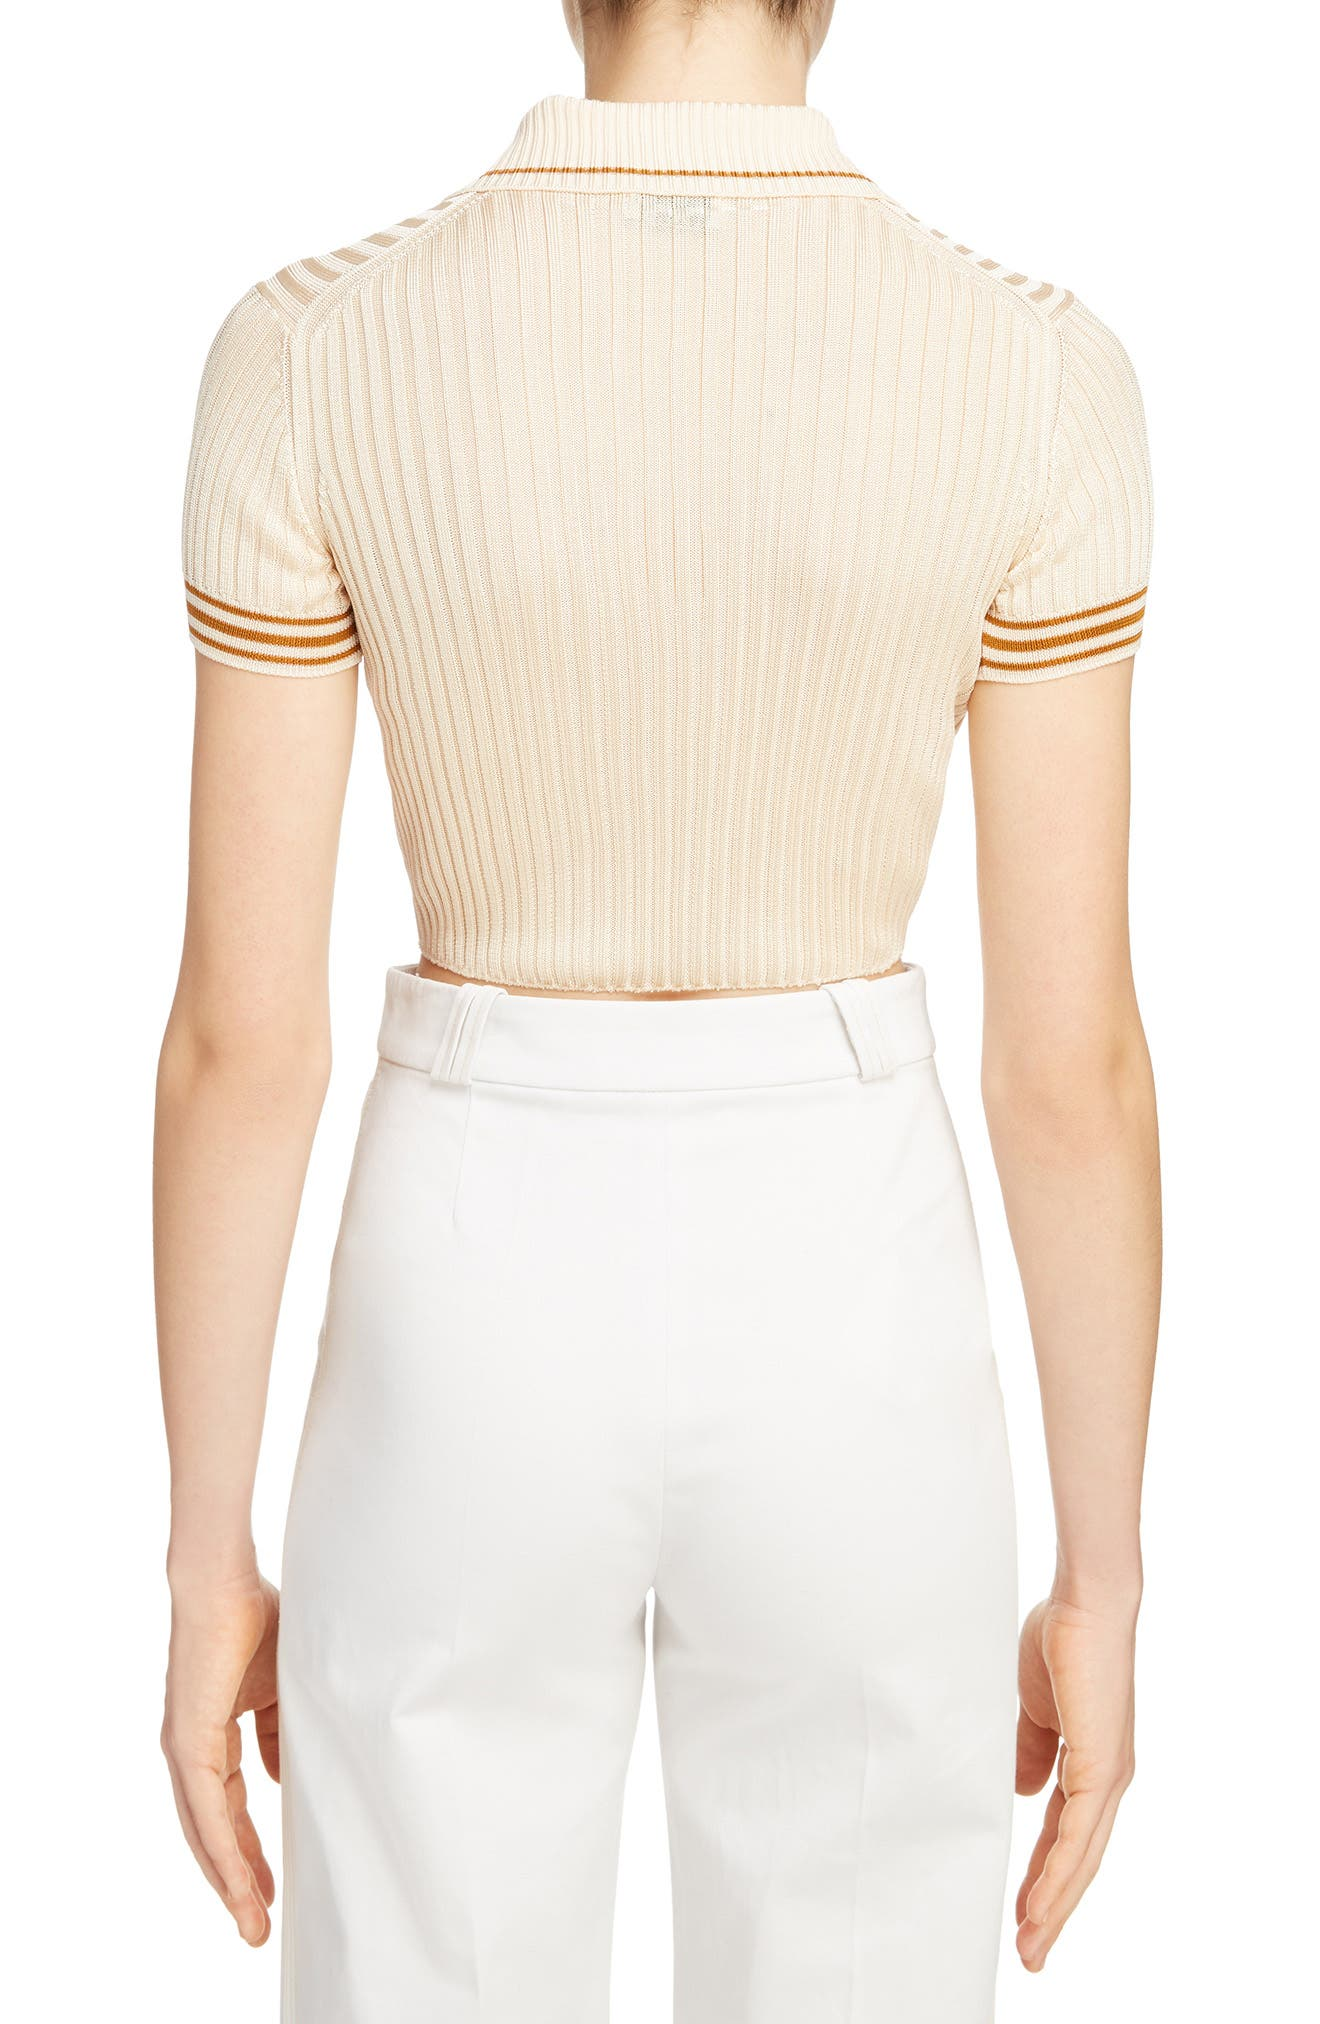 Shanita Lingerie Crop Polo Sweater,                             Alternate thumbnail 2, color,                             Ivory White/ Tobacco Stripe